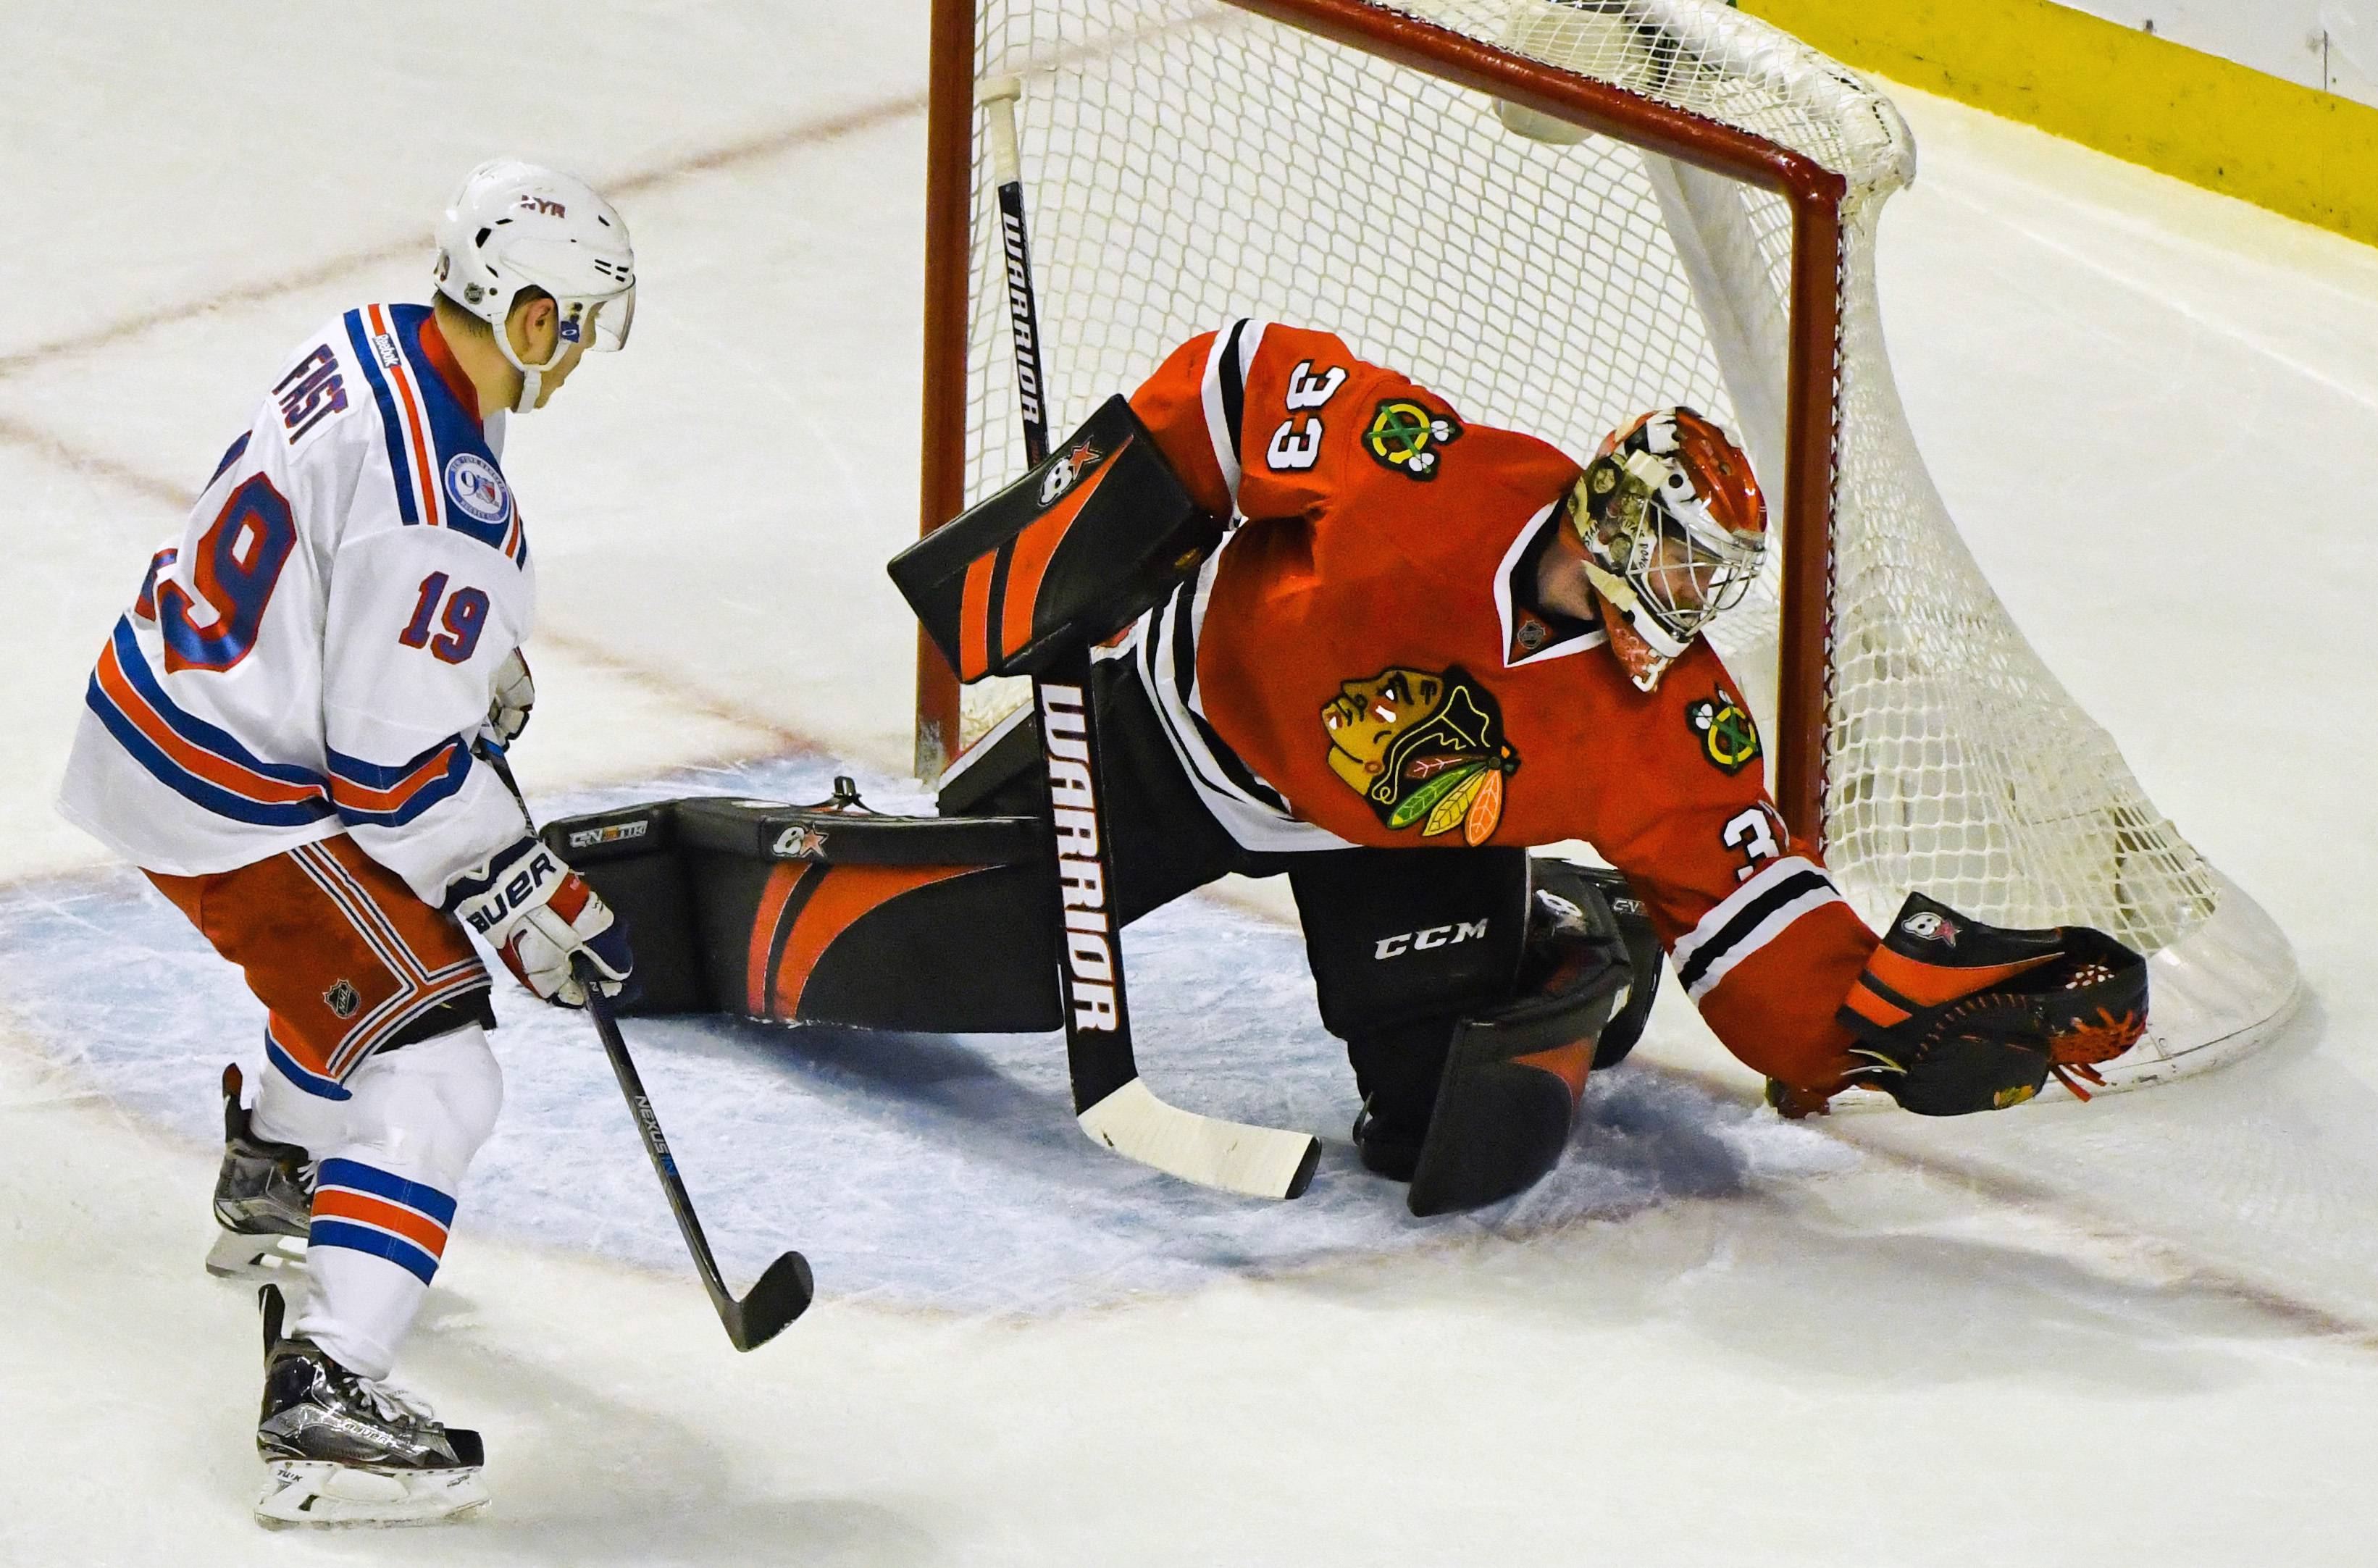 Scott Darling was stellar in goal for the Blackhawks Friday night making 36 saves. But the New York Rangers won 55 seconds into extra time when Nick Holden finally beat Darling with the Rangers' 37th shot of the night.